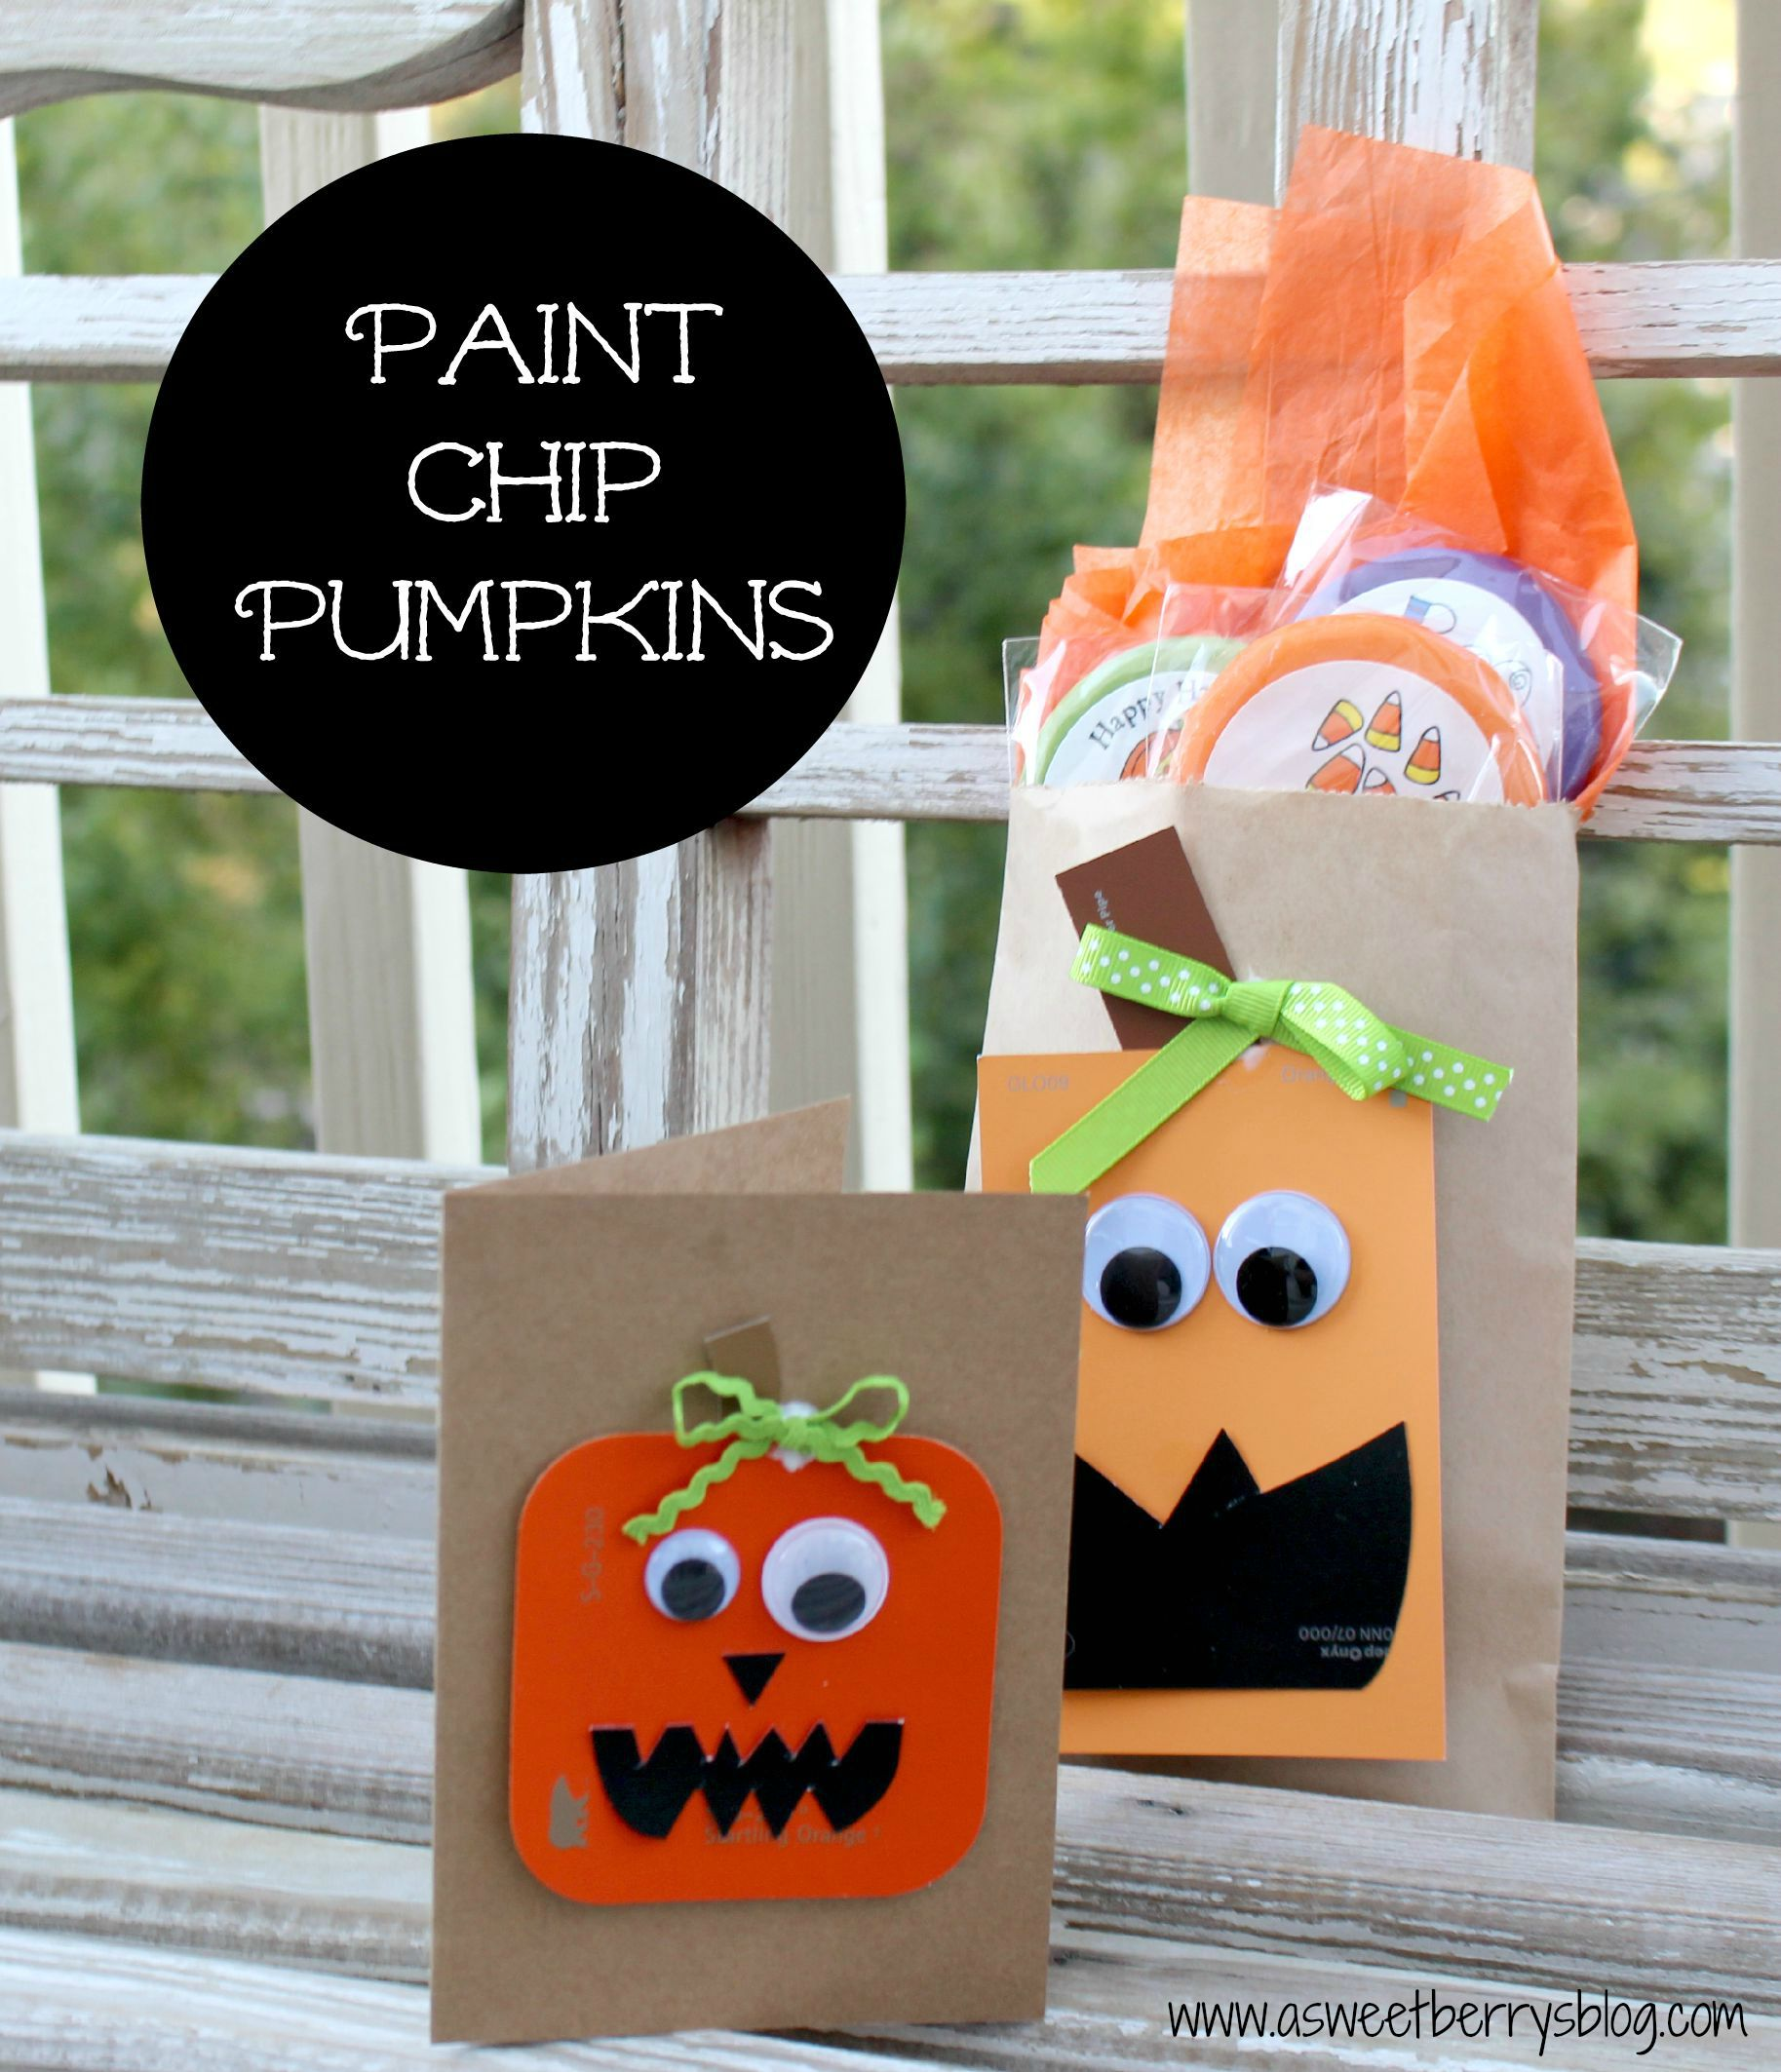 Paint Chip Pumpkins